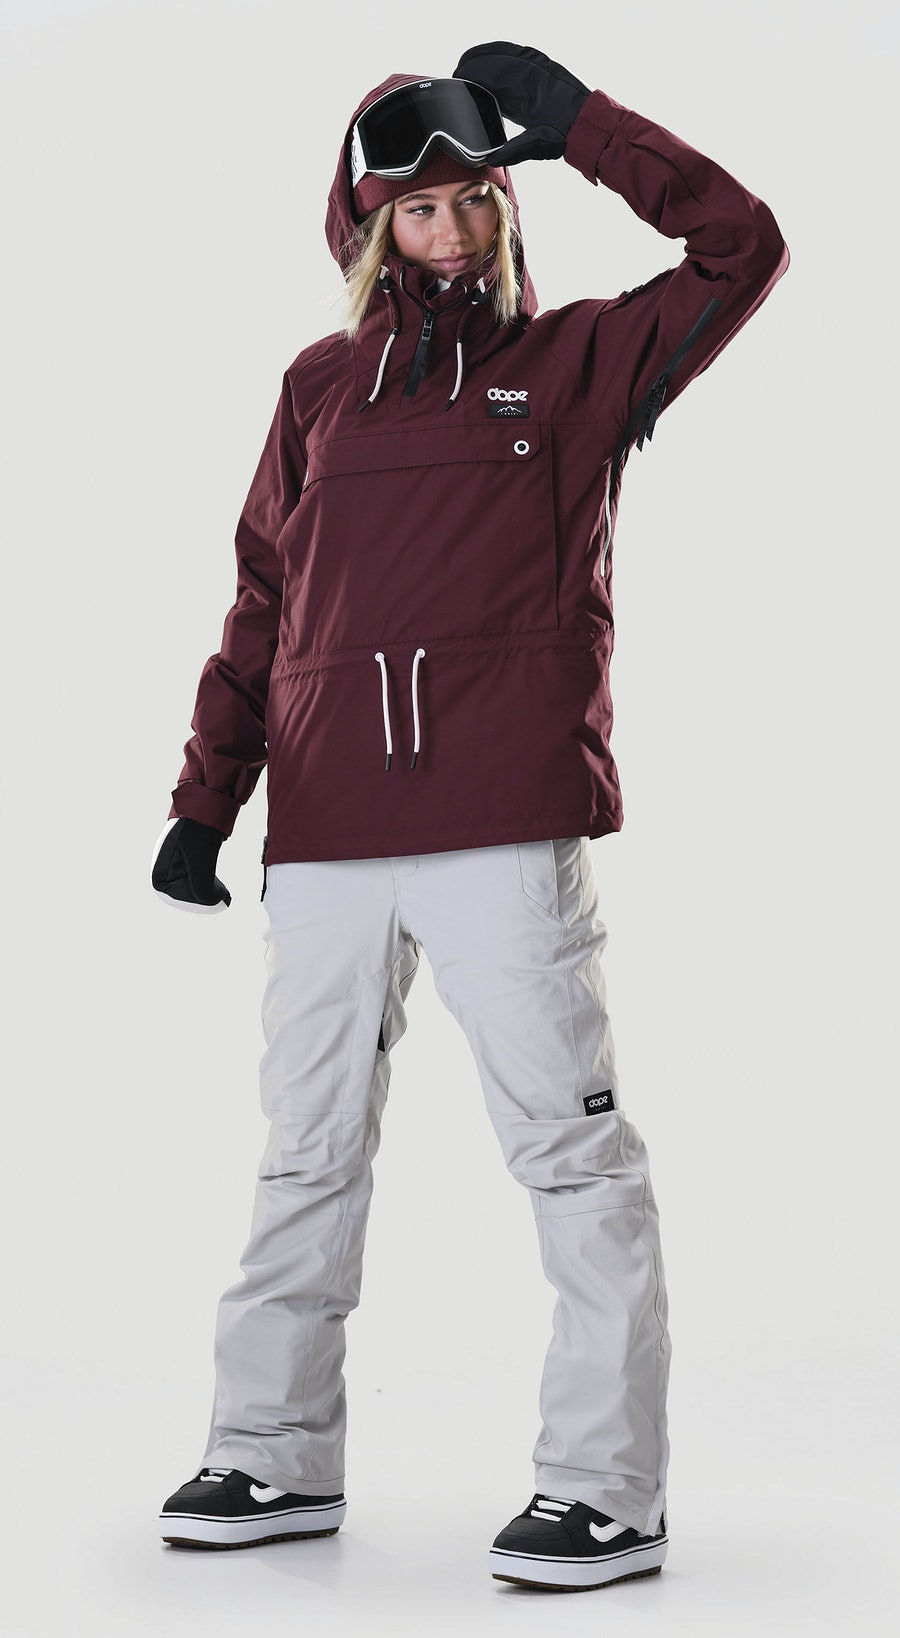 Dope Annok W Burgundy Snowboard clothing Multi